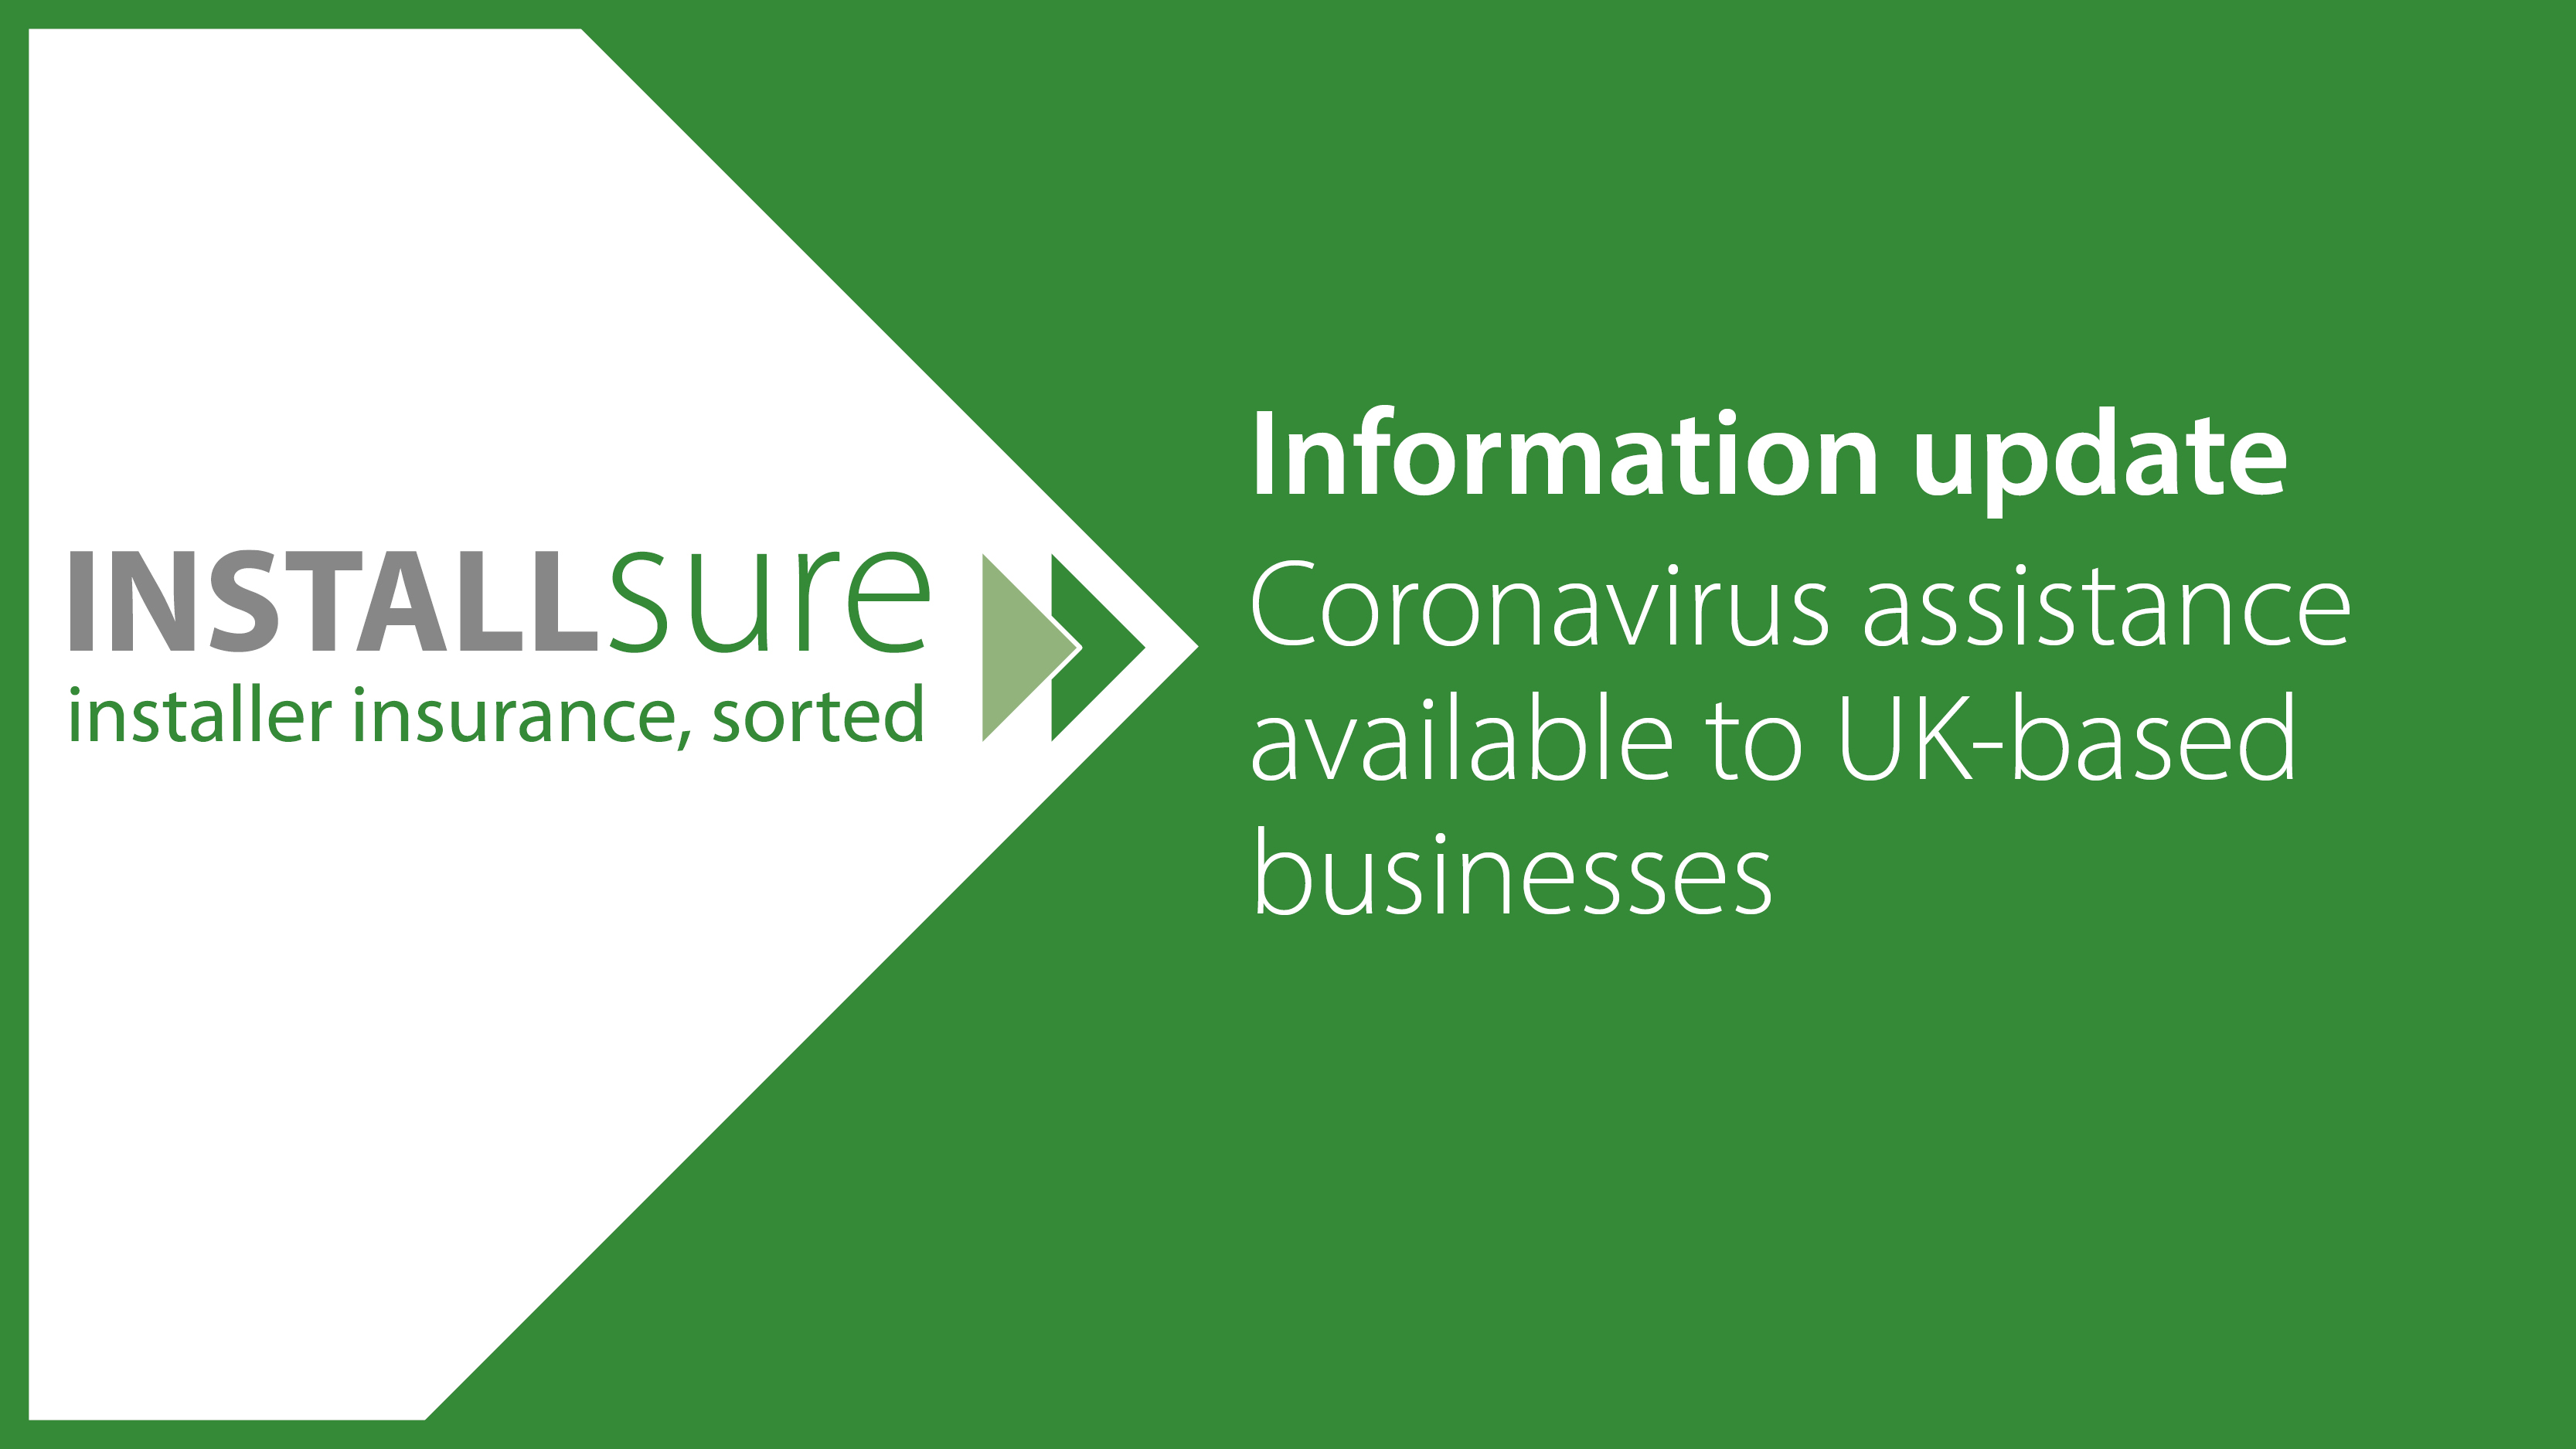 Installsure information update - Coronavirus assistance available to UK based businesses